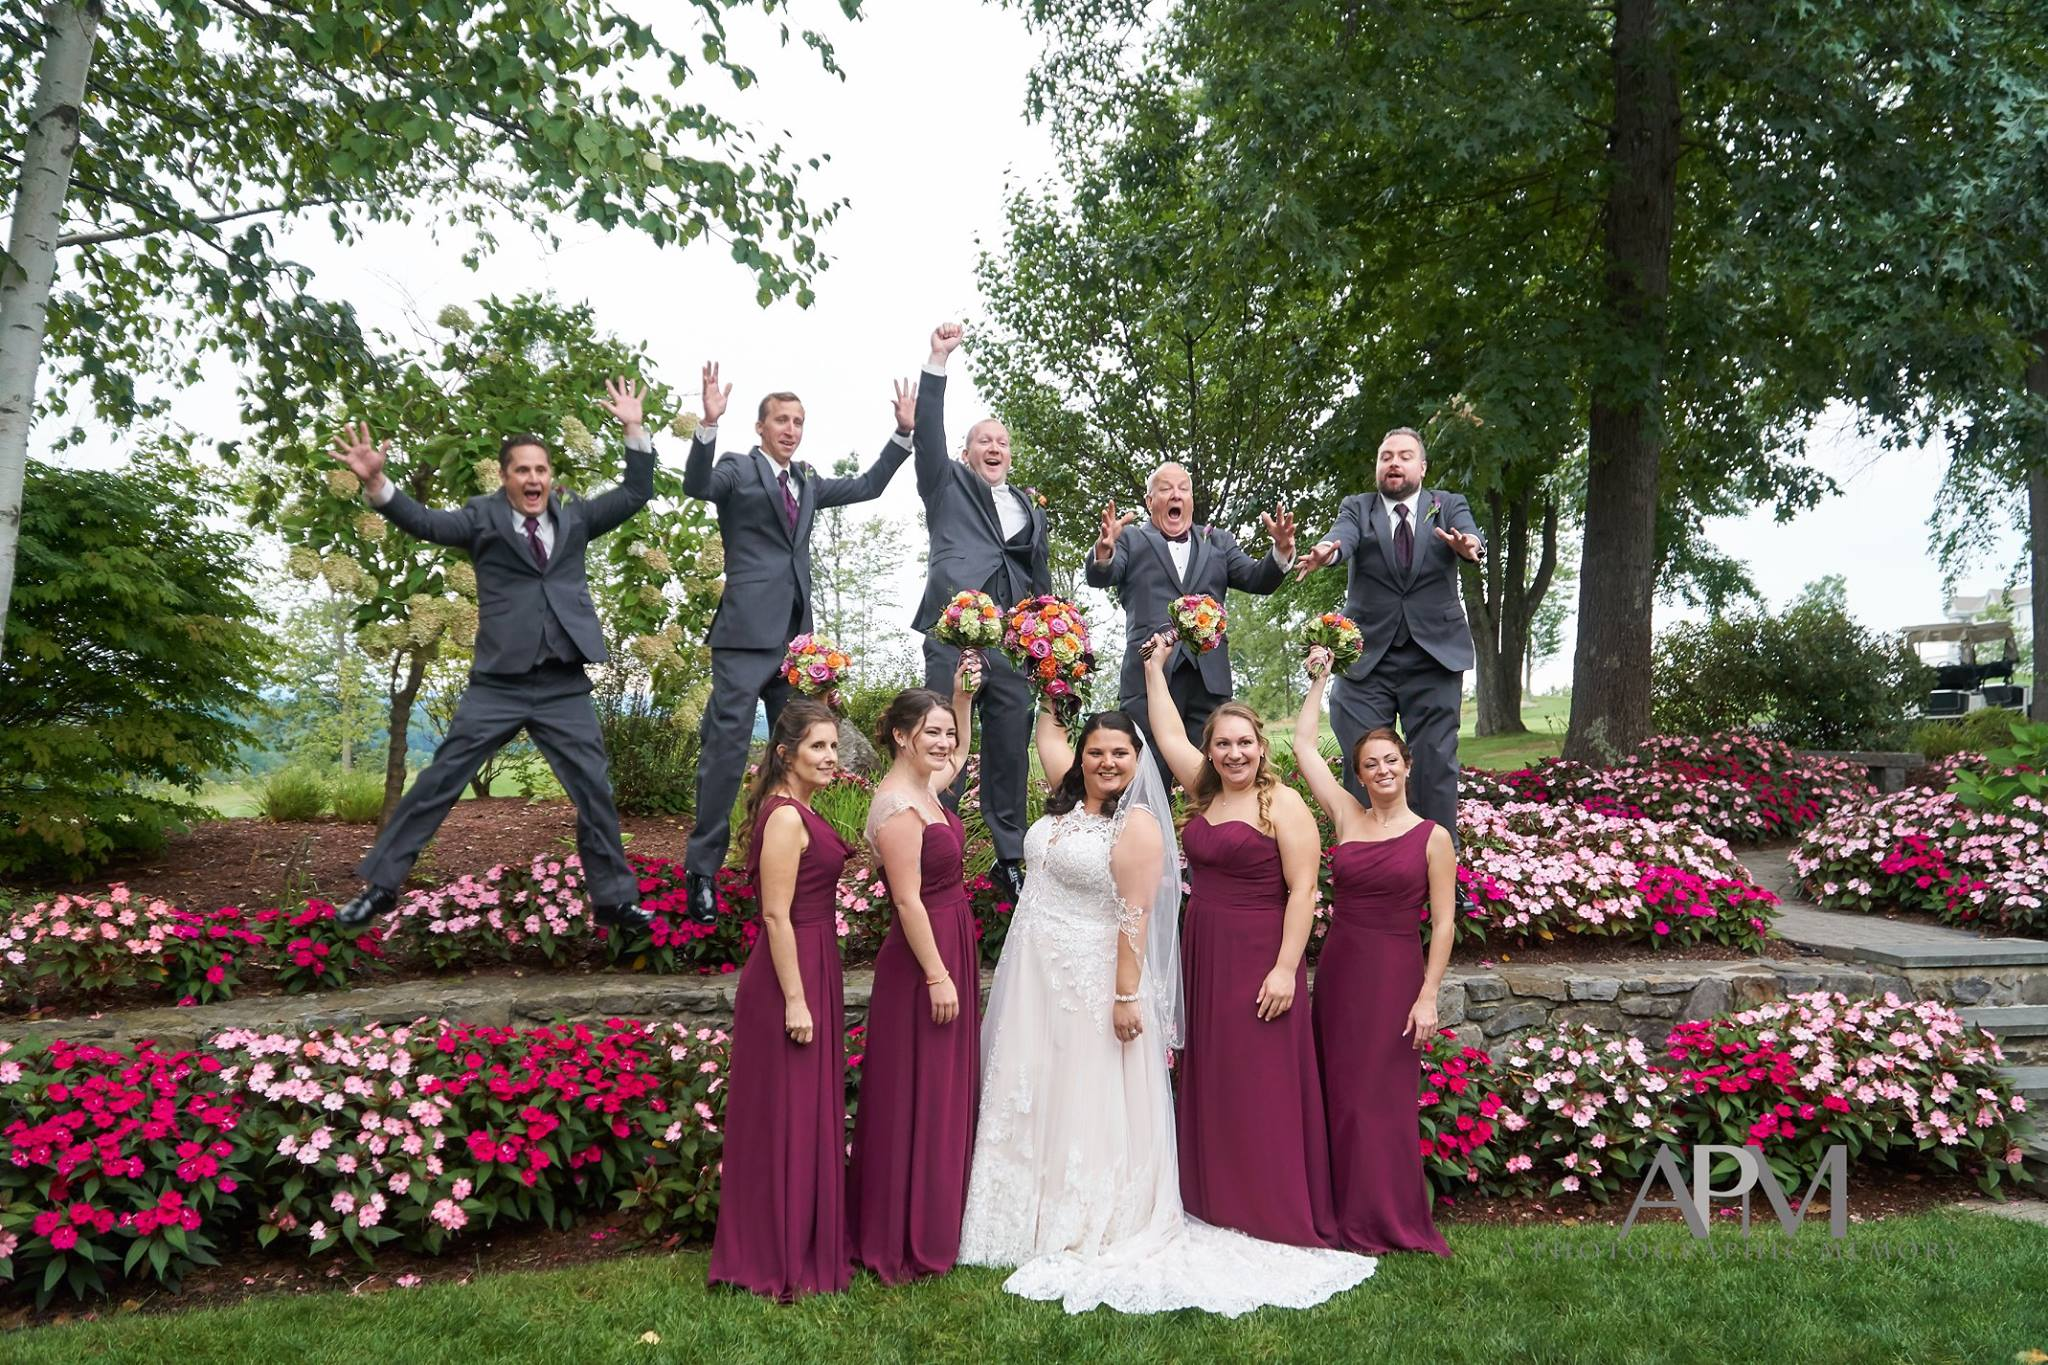 Croteau And Surra Wedding 9.8.18 Picture 4